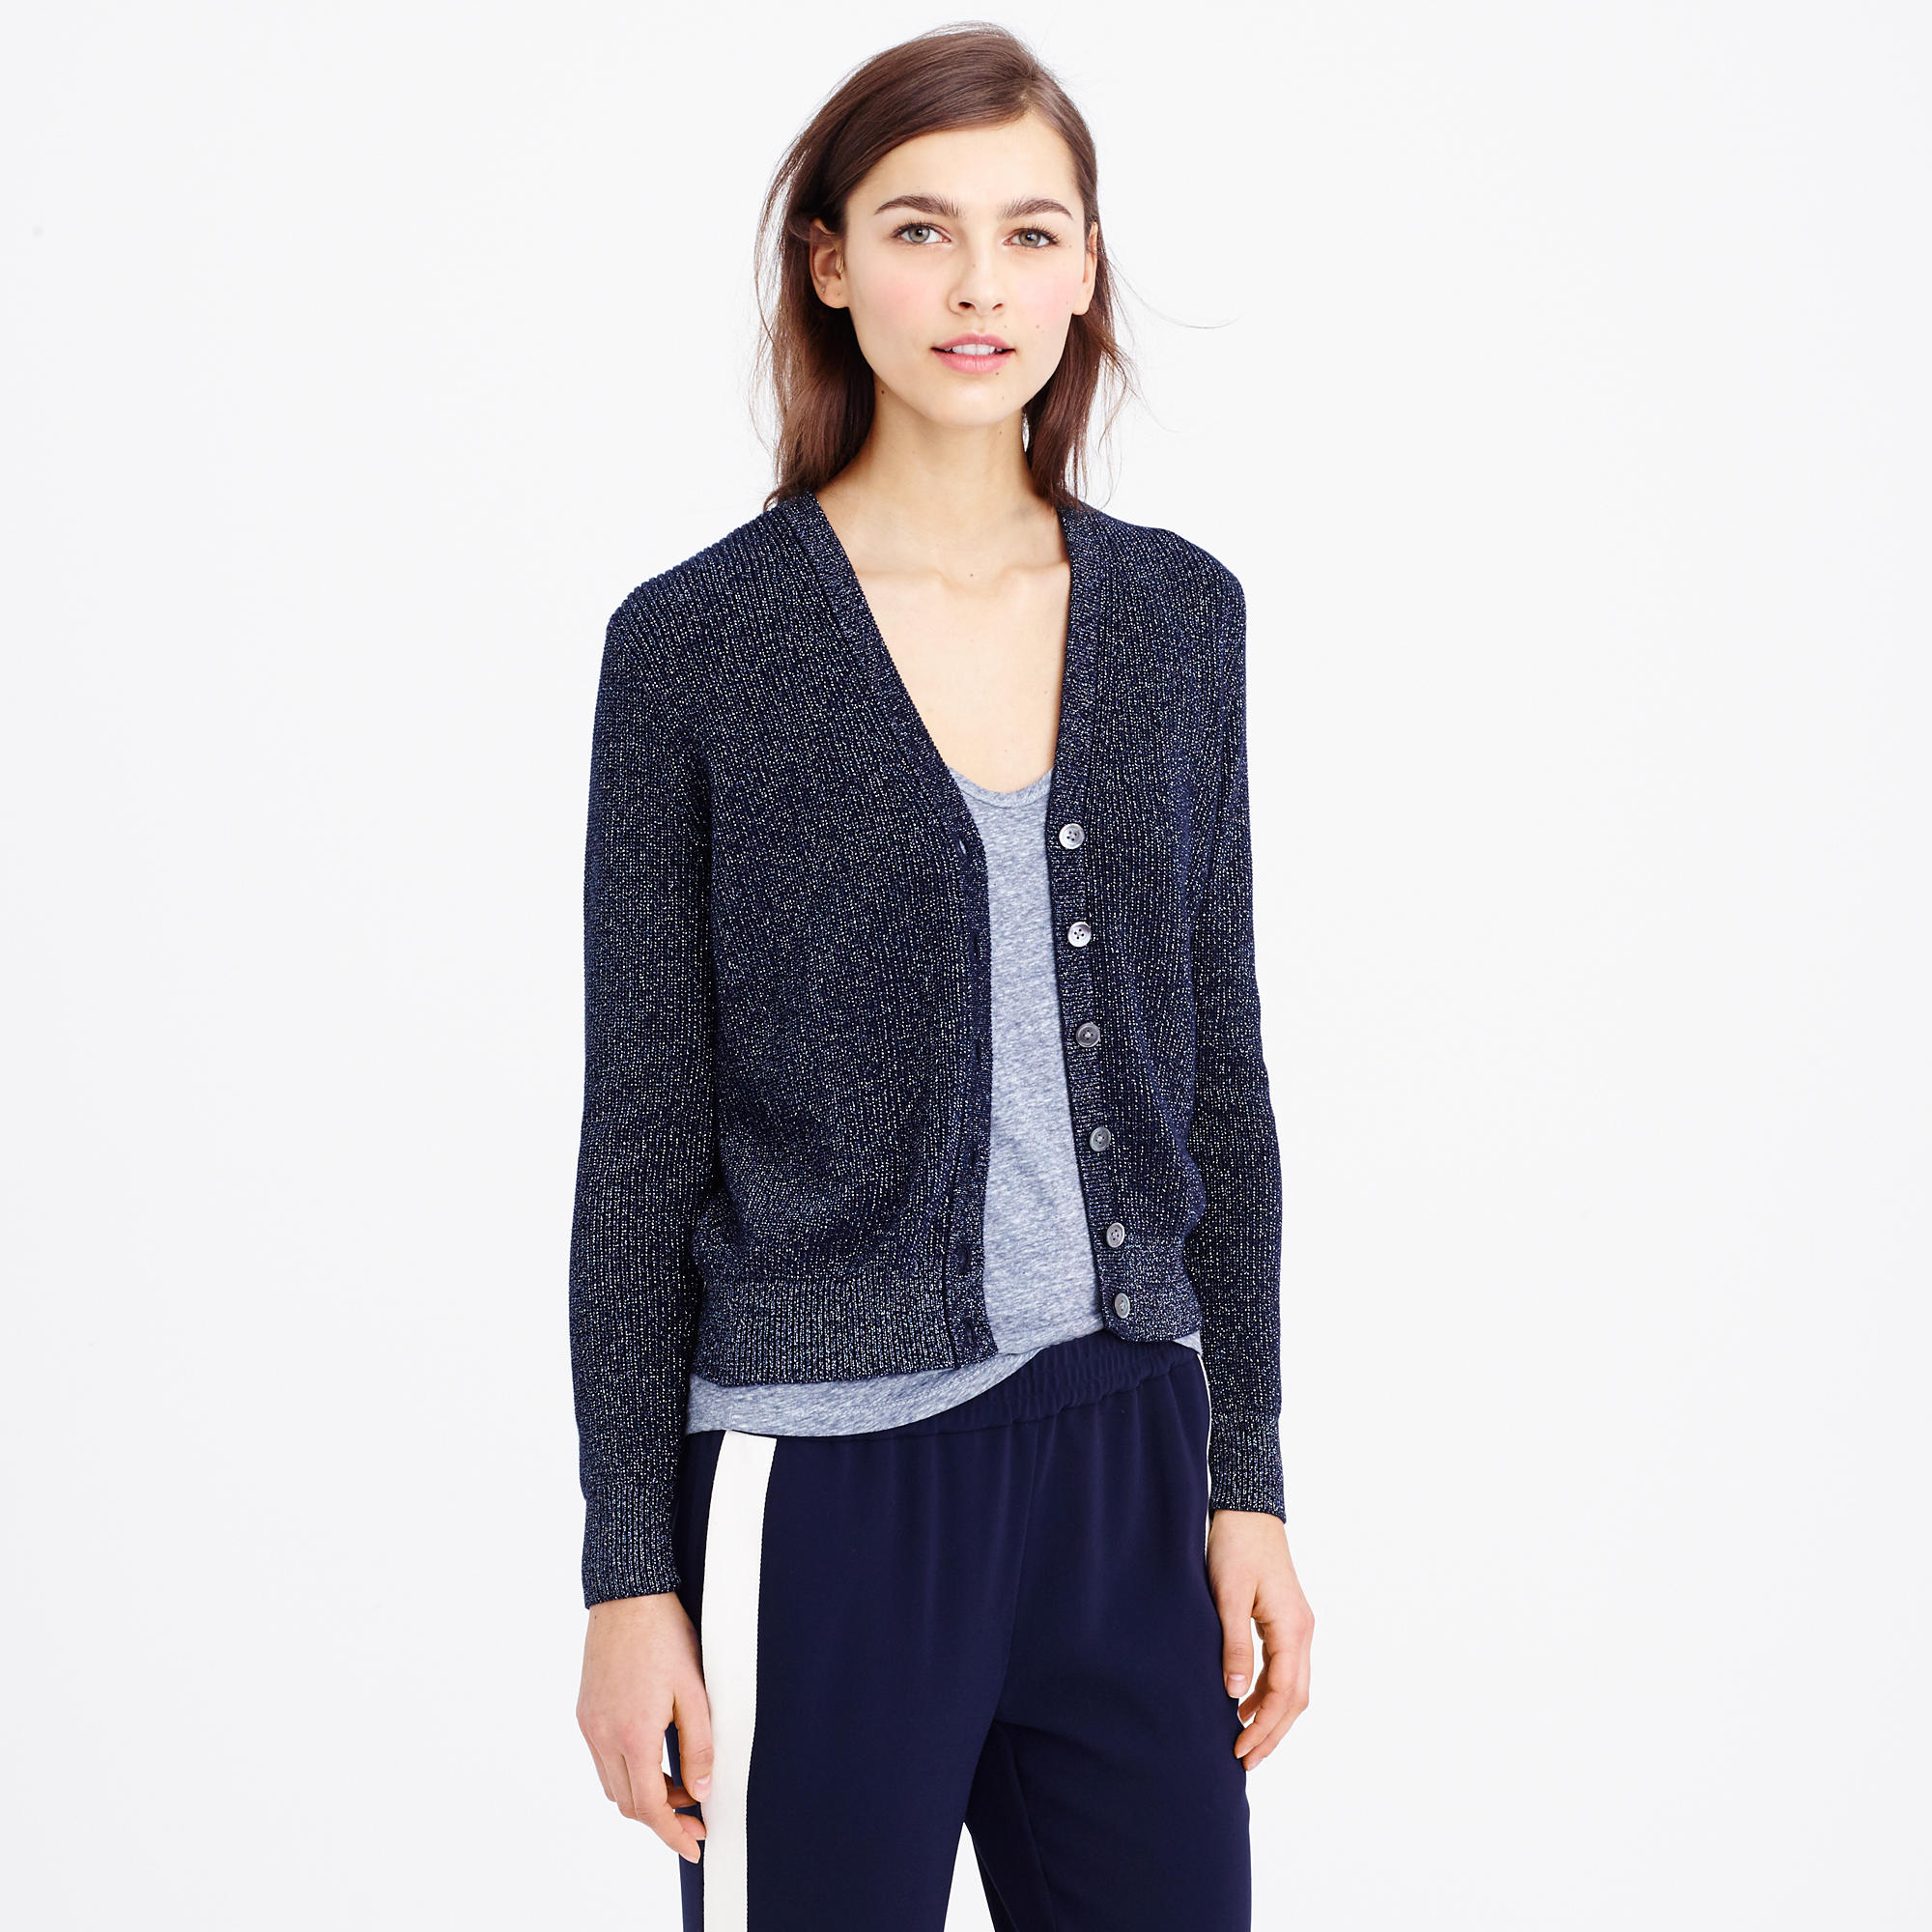 Find great deals on eBay for navy blue cardigan sweater. Shop with confidence. Skip to main content. eBay: Shop by category. New Listing Chicos Womens Sheer Sweater Open Front Cardigan Navy Blue Size 2 PLS READ. Pre-Owned. $ Time left 6d 5h left. 1 bid +$ shipping.